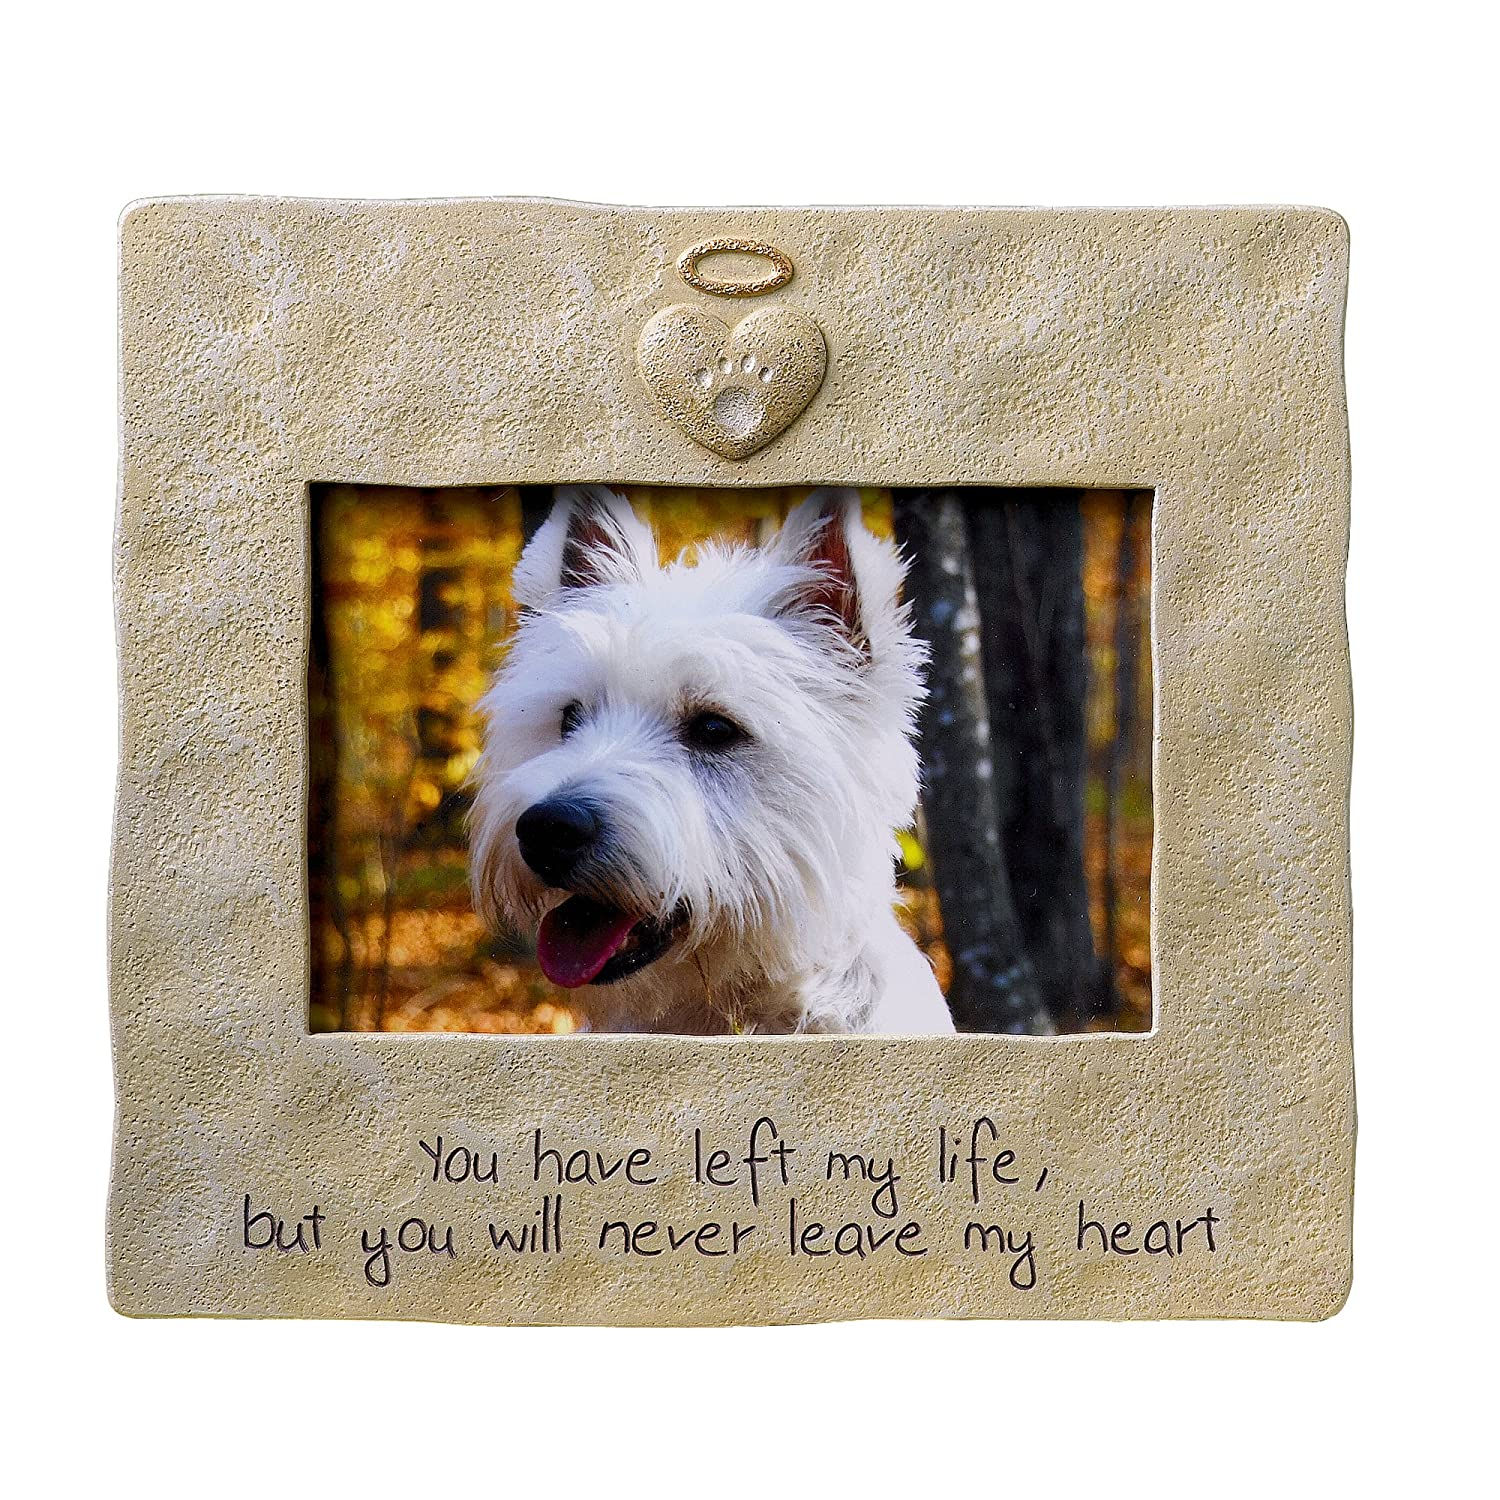 amazoncom grasslands road pet memorial picture frame 4 by 6 inch loss of pet gifts - Dog Memorial Frame